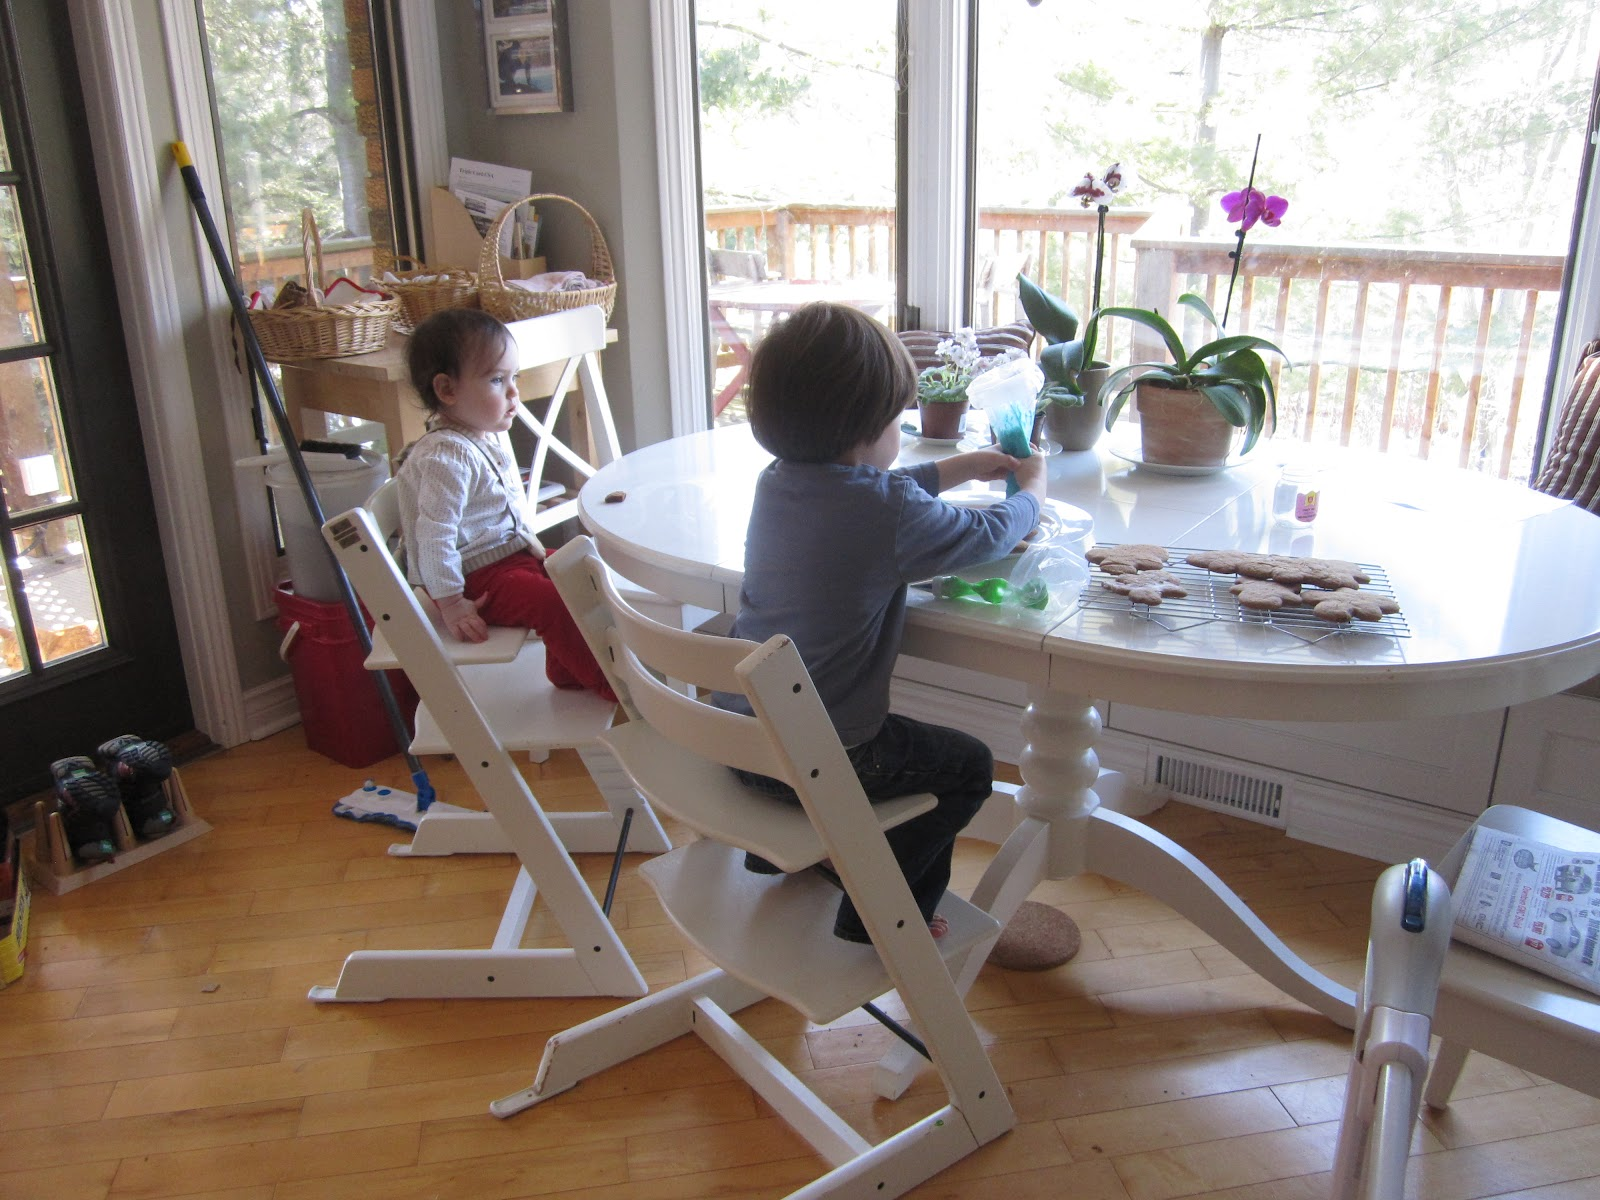 Stokke High Chair Toddler With Name Engineered Chaos A Journey In Parenting Review Here Is Link To The Website Where Features Are Explained More Detail Price Point On Around 300 Cdn But Keep Mind You